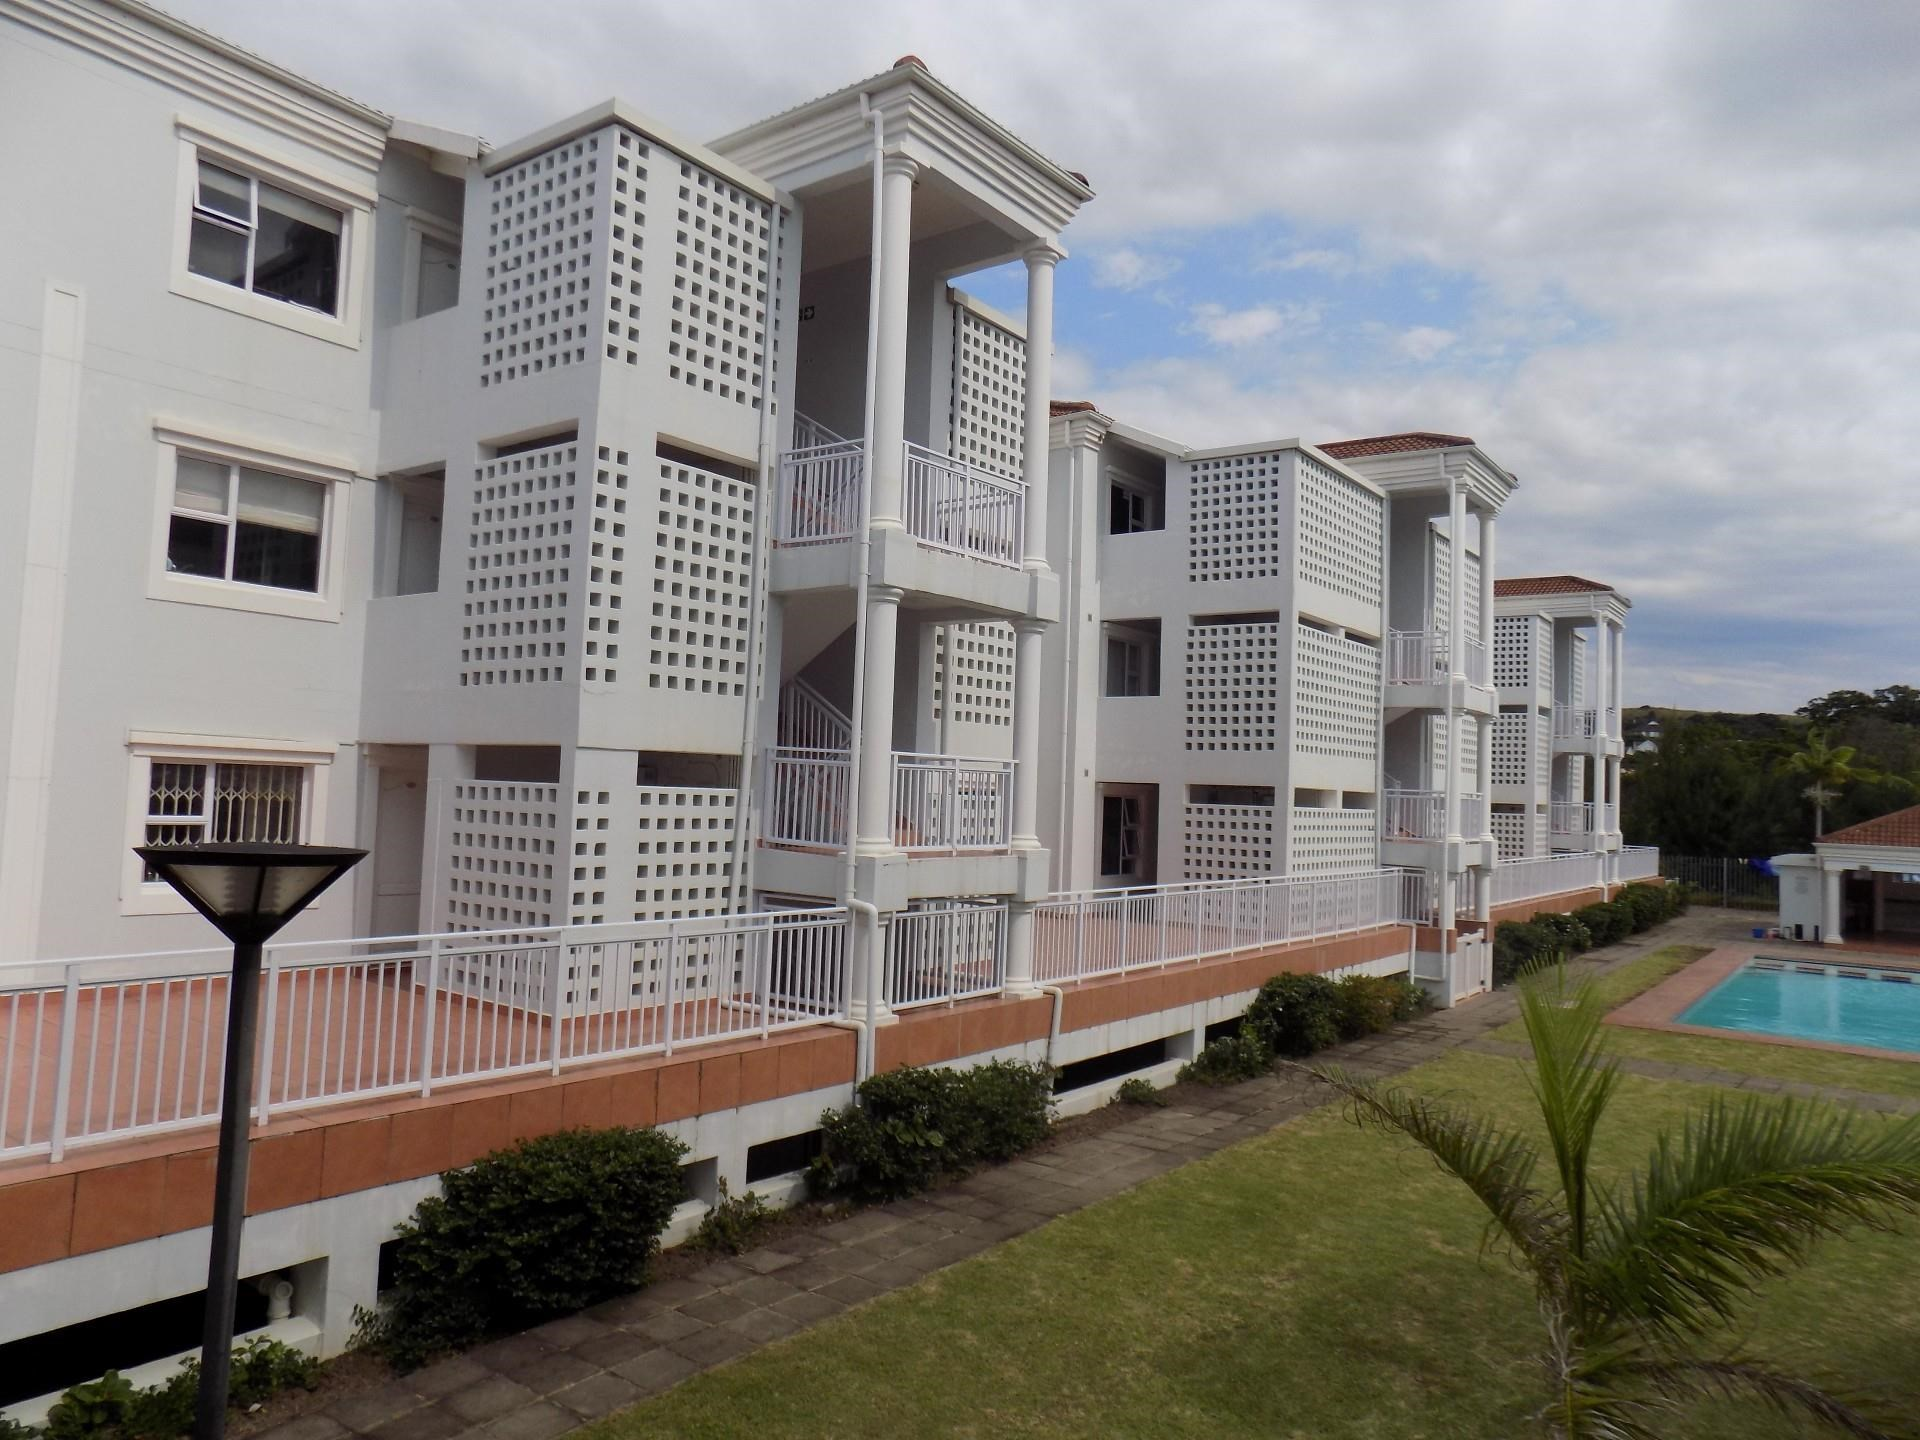 2 Bedroom Apartment for Sale in Shelly Beach